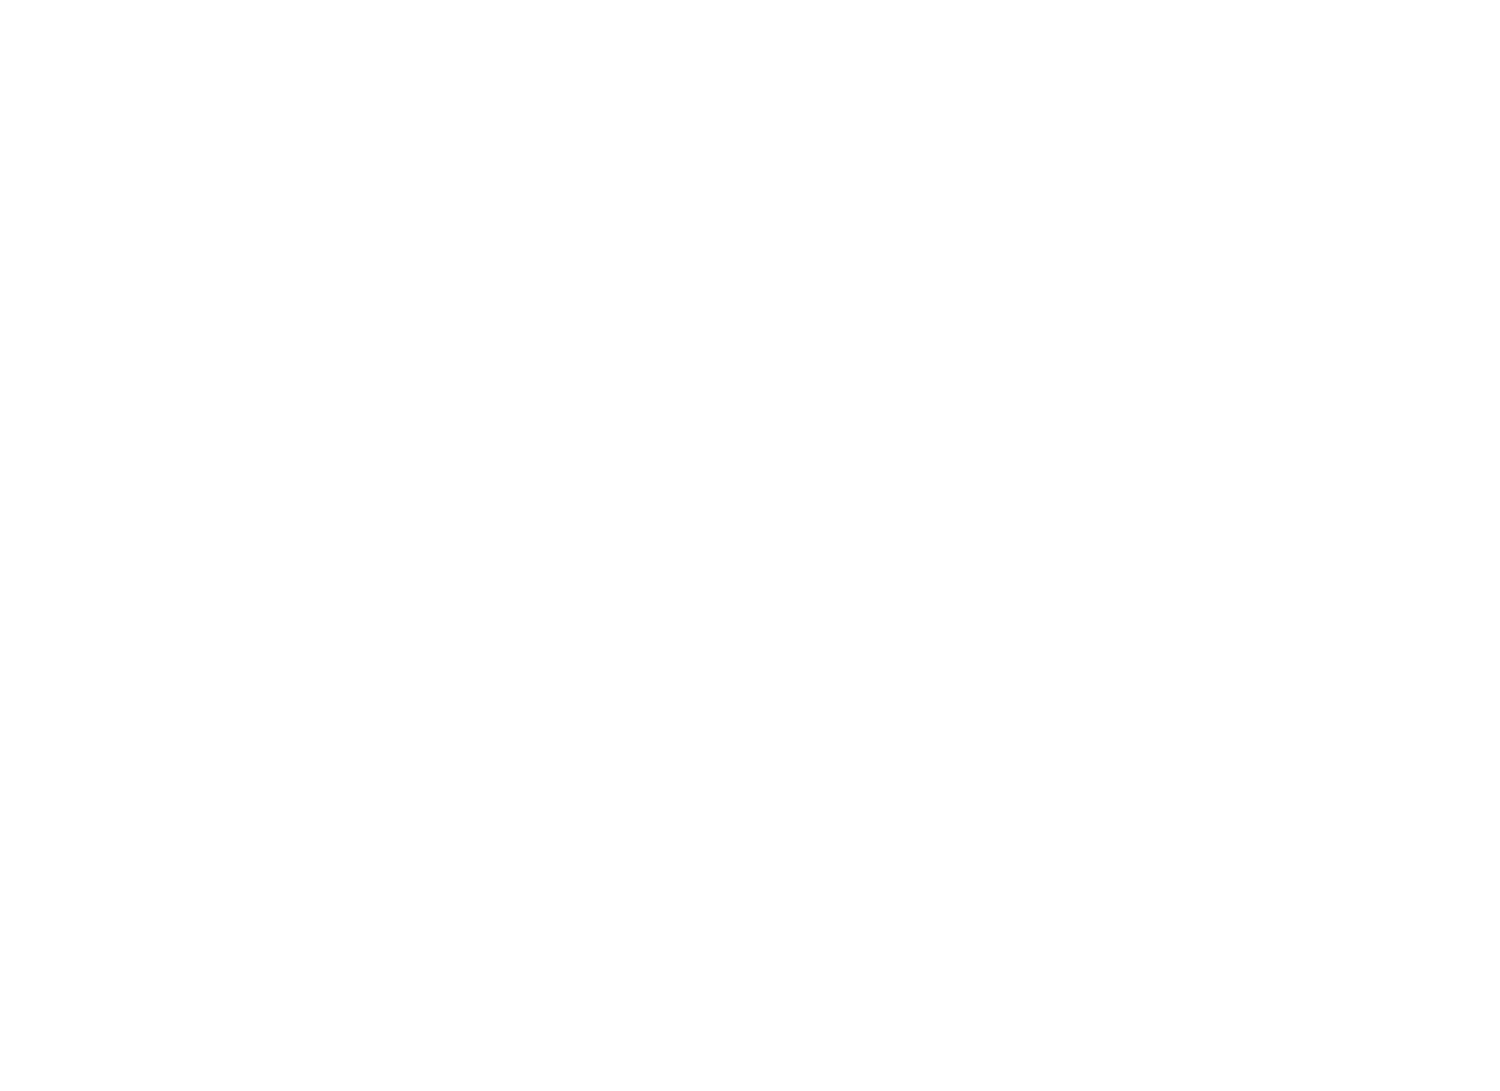 The Bookie Box